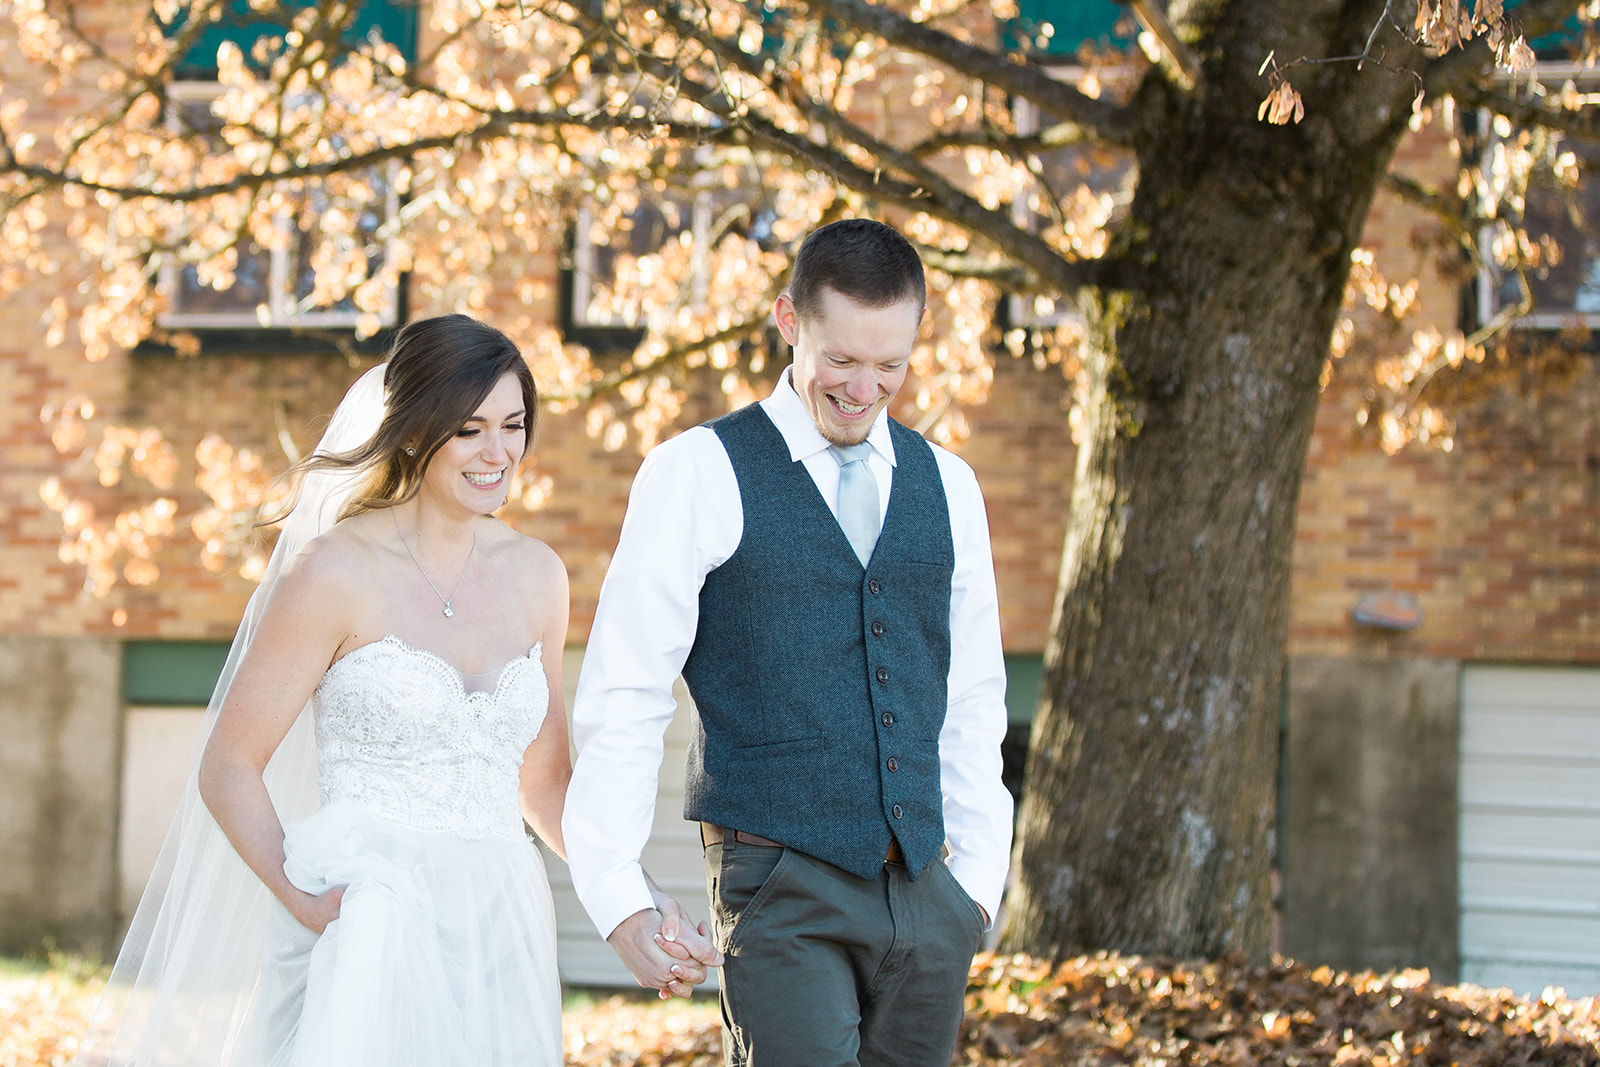 spokane wedding dress greenbluff fall bride groom